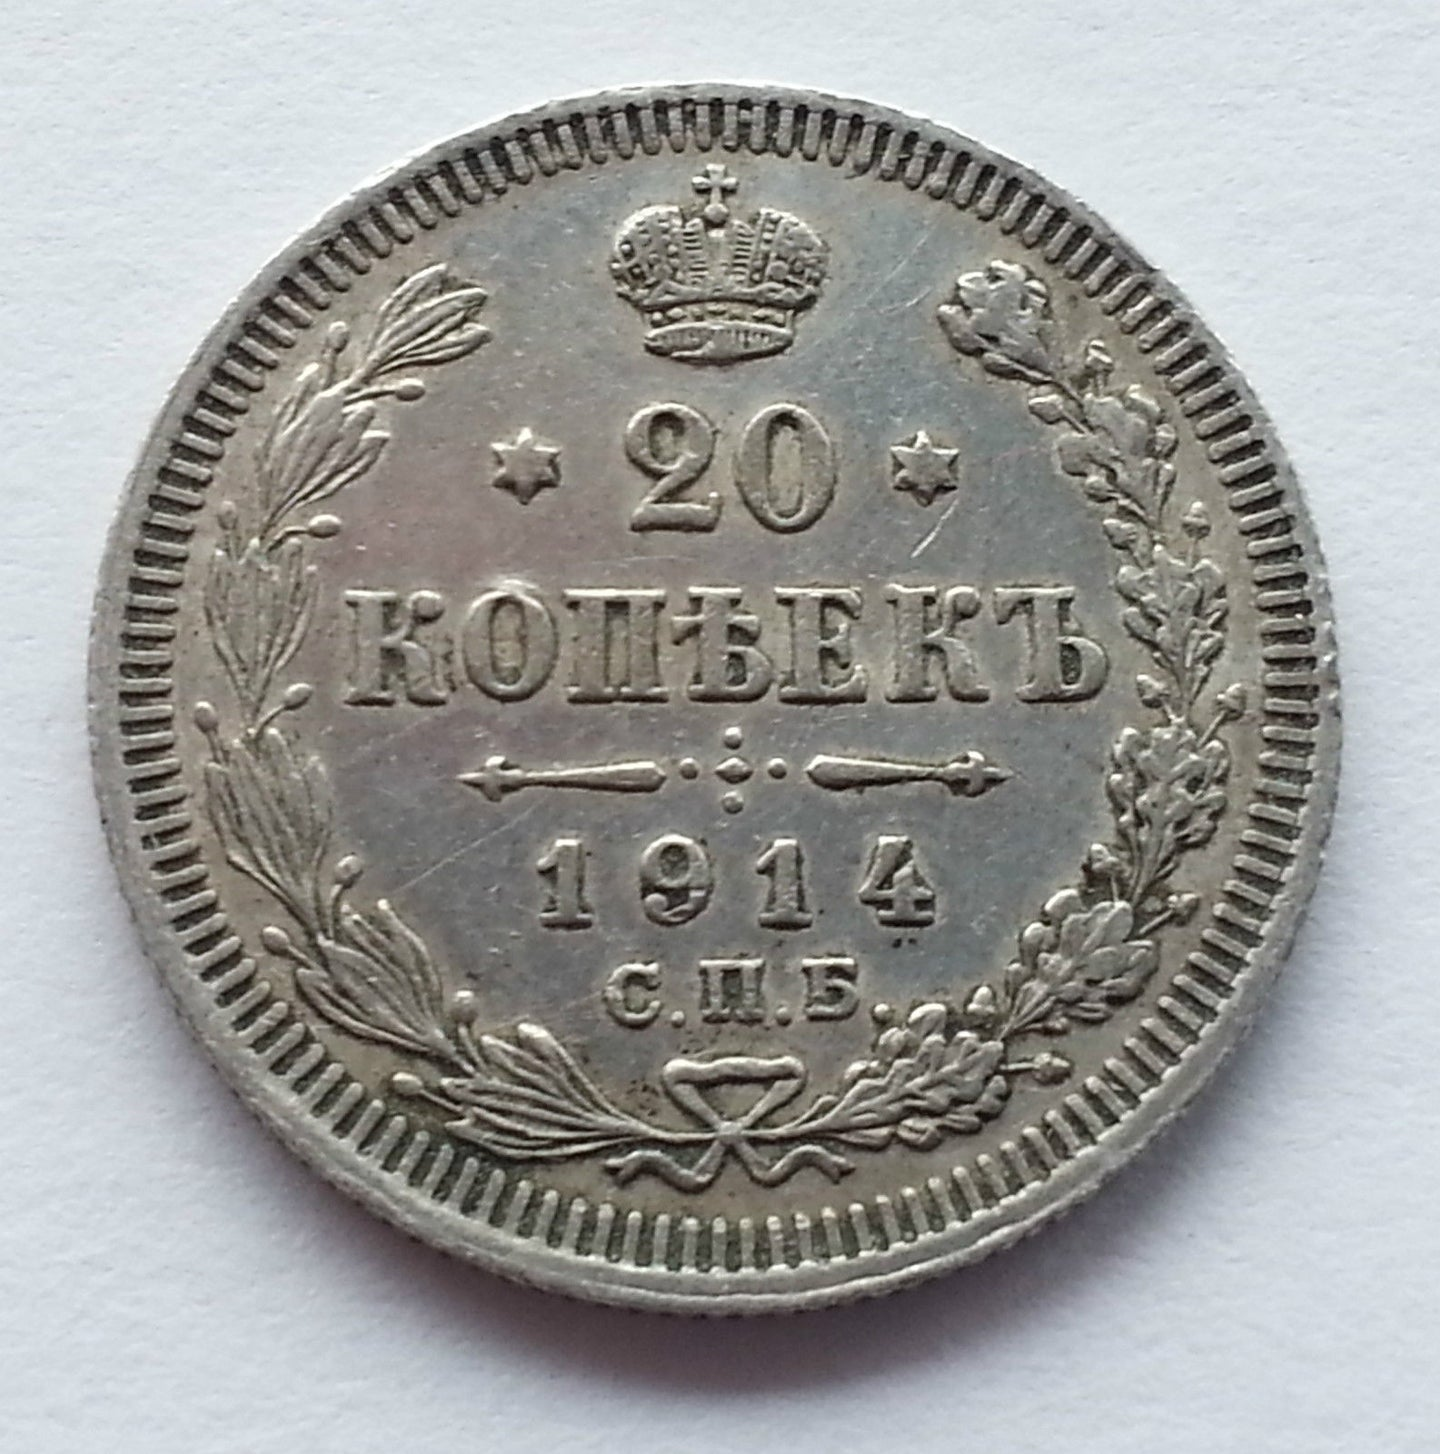 Antique 1914 silver coin 20 kopeks Emperor Nicolas II of Russian Empire SPB 20th